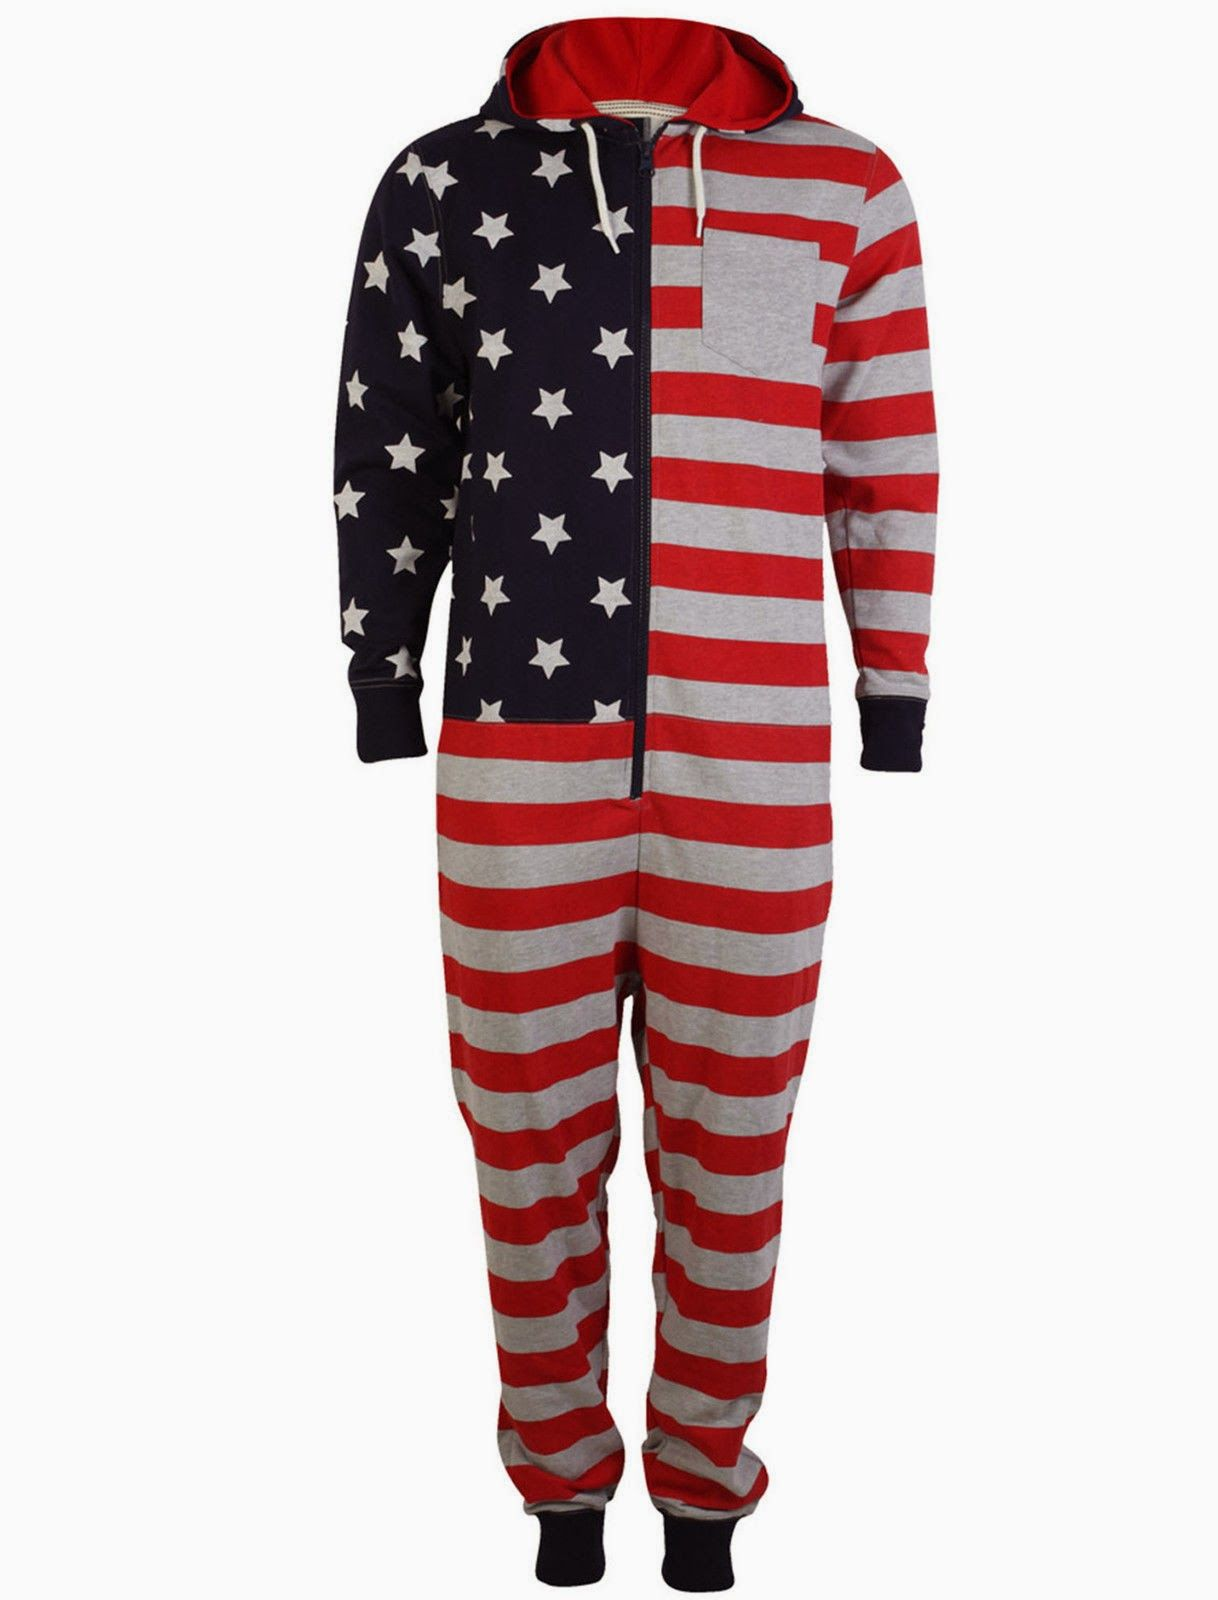 48b168e32ee9 Onesie pajama for Team USA and Olympics fans. love it